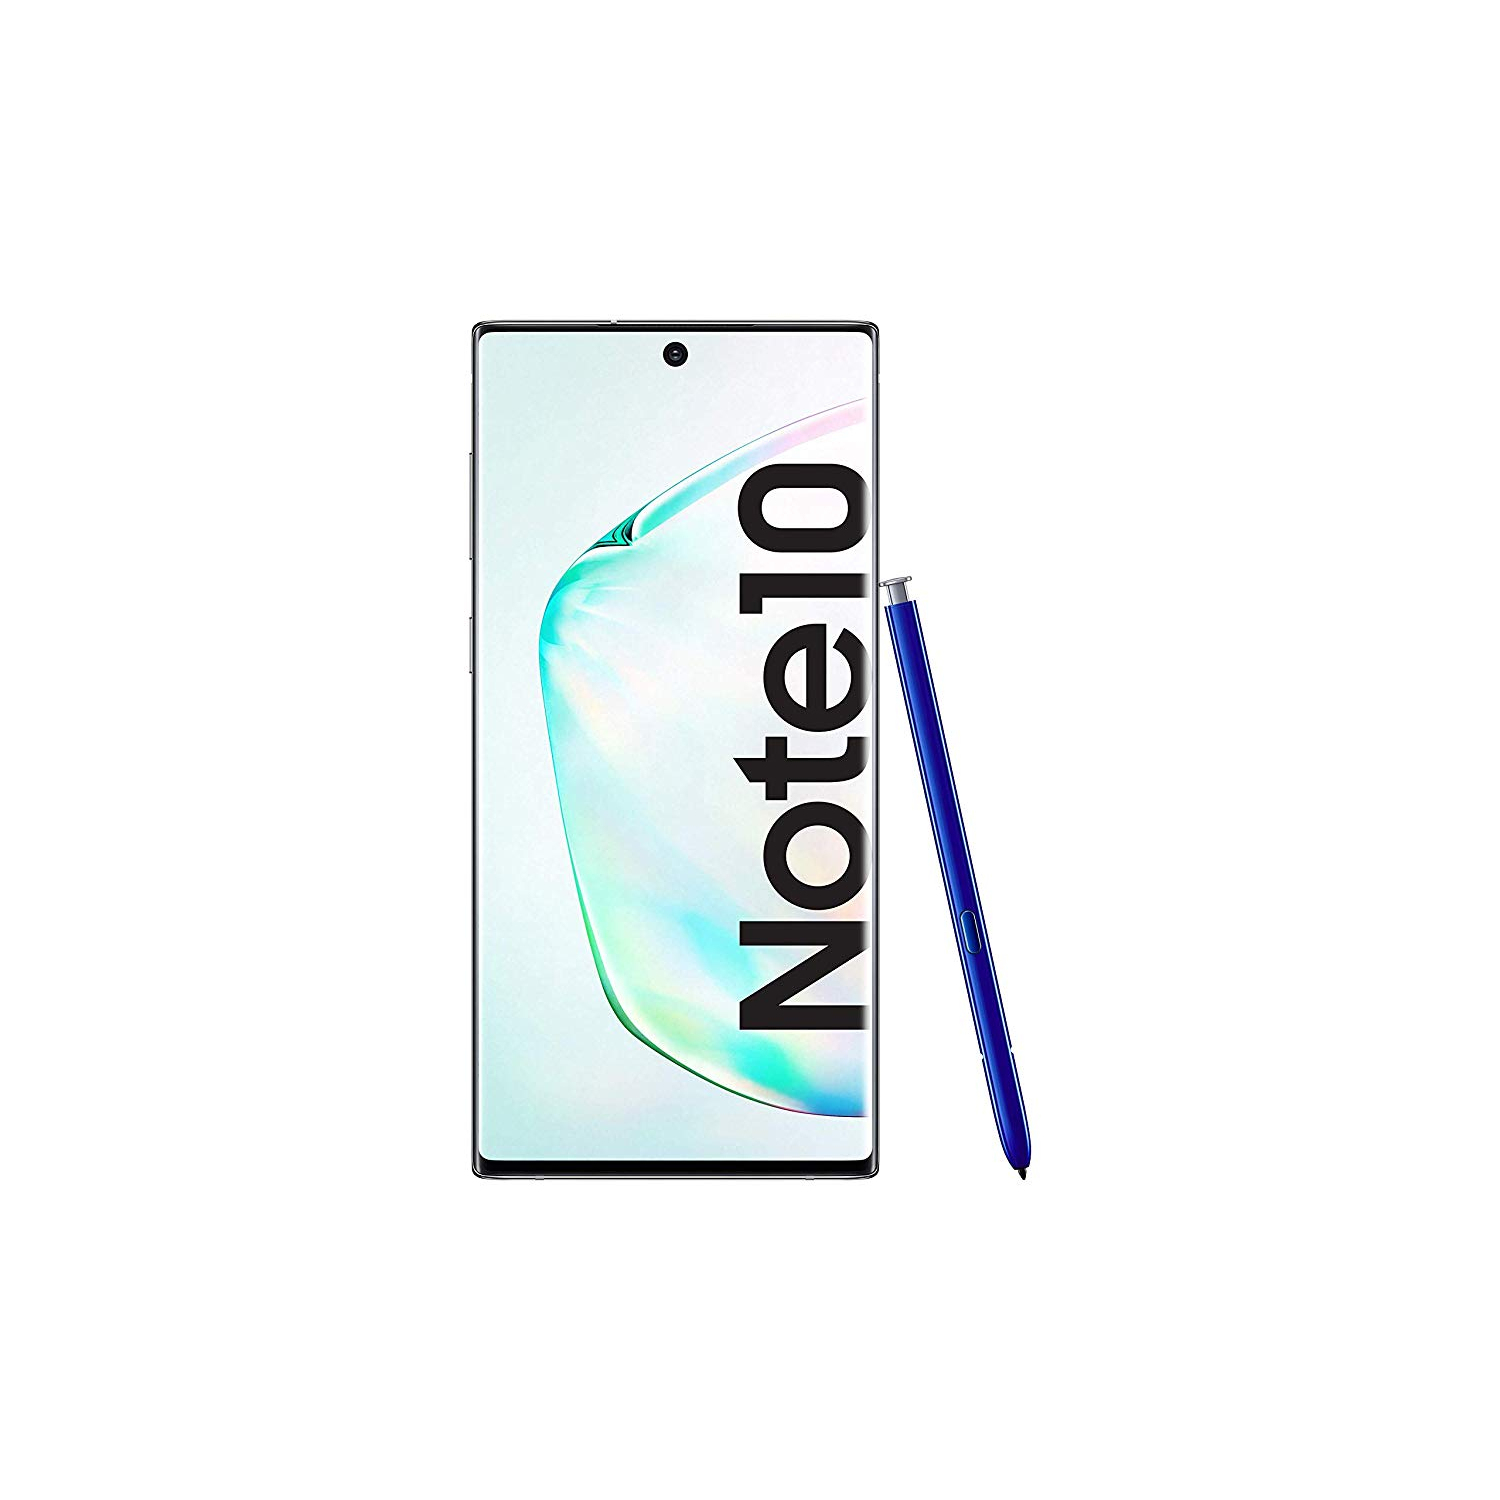 Samsung Galaxy Note 10 (SM-N970F), Bright Color (Aurora Glow), 256 GB Internal Memory, 8 GB RAM, Dual SIM, Oktoberfest